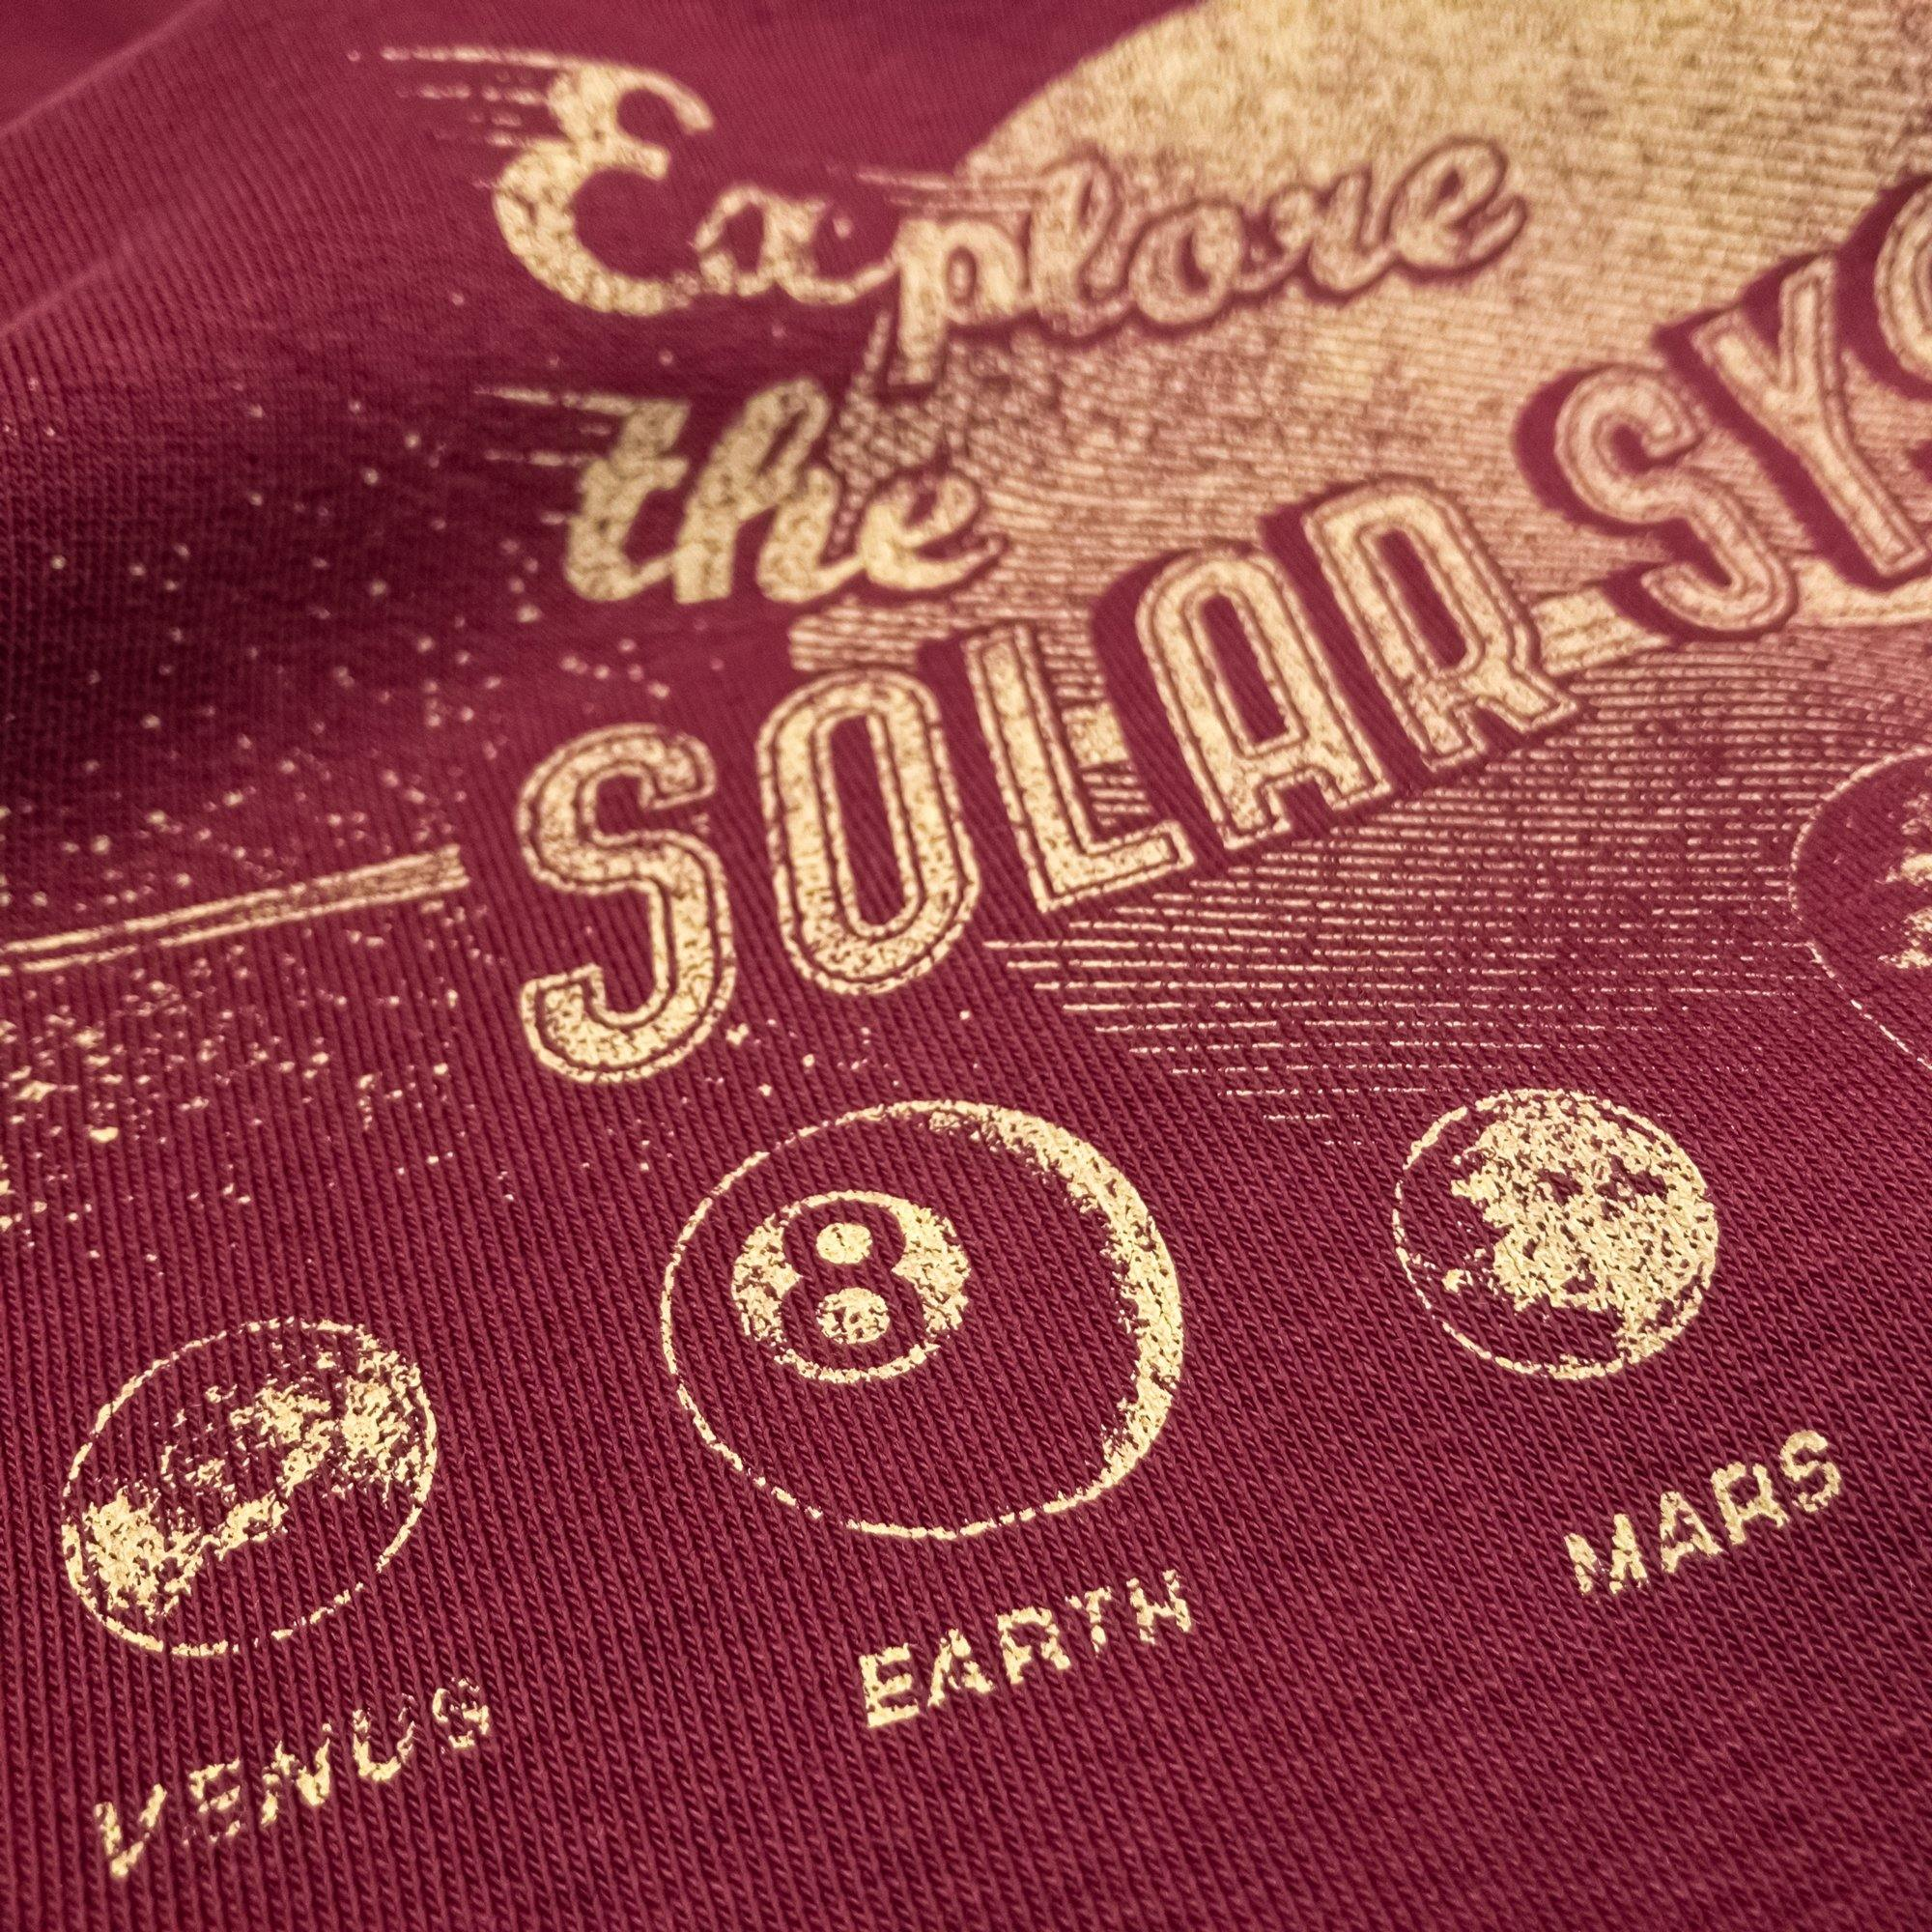 Explore the Solar System sweatshirt hand printed organic cotton sweatshirt